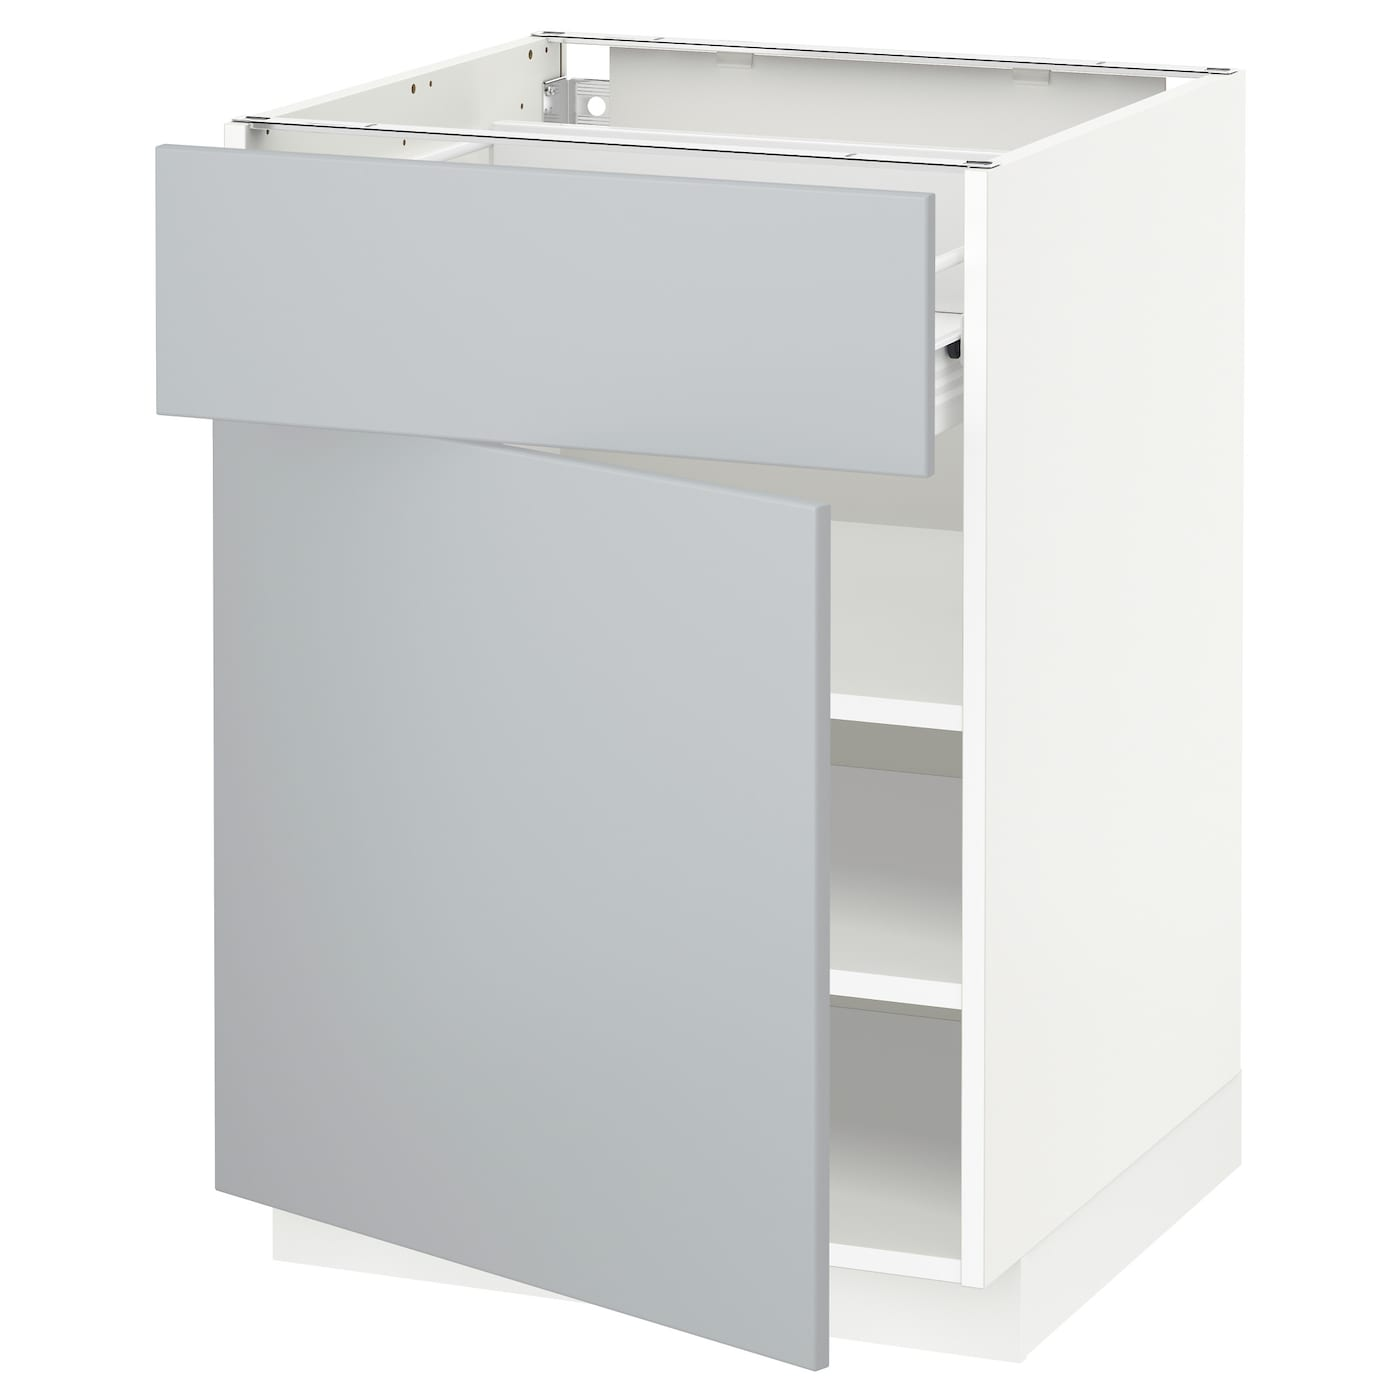 High Quality IKEA METOD/FÖRVARA Base Cabinet With Drawer/door Sturdy Frame Construction,  18 Mm